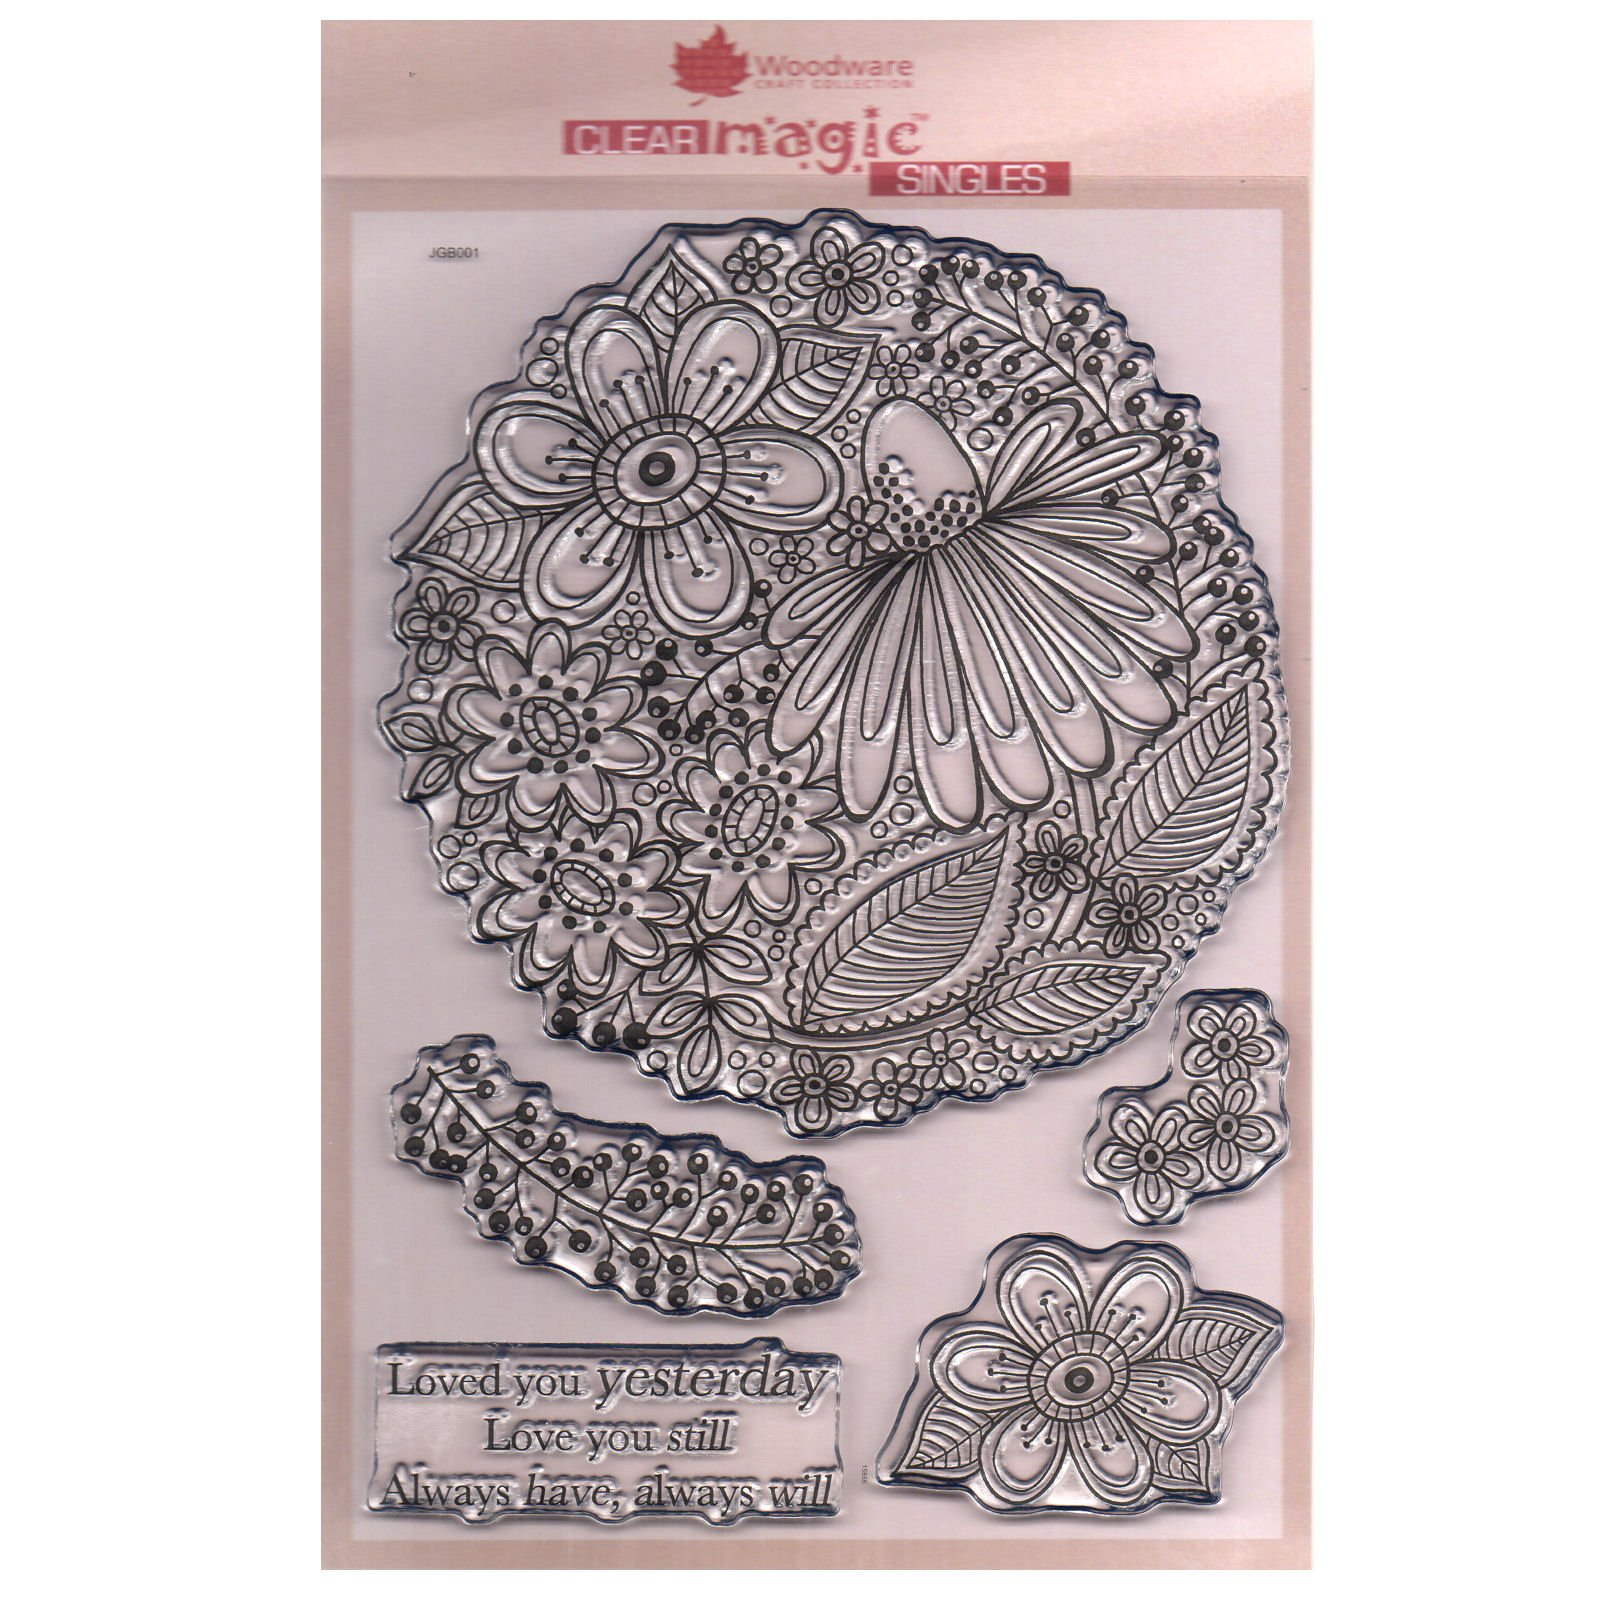 Woodware A5 Clear Cling Stamps - JGB001 Jacqui's Garden by WoodWare